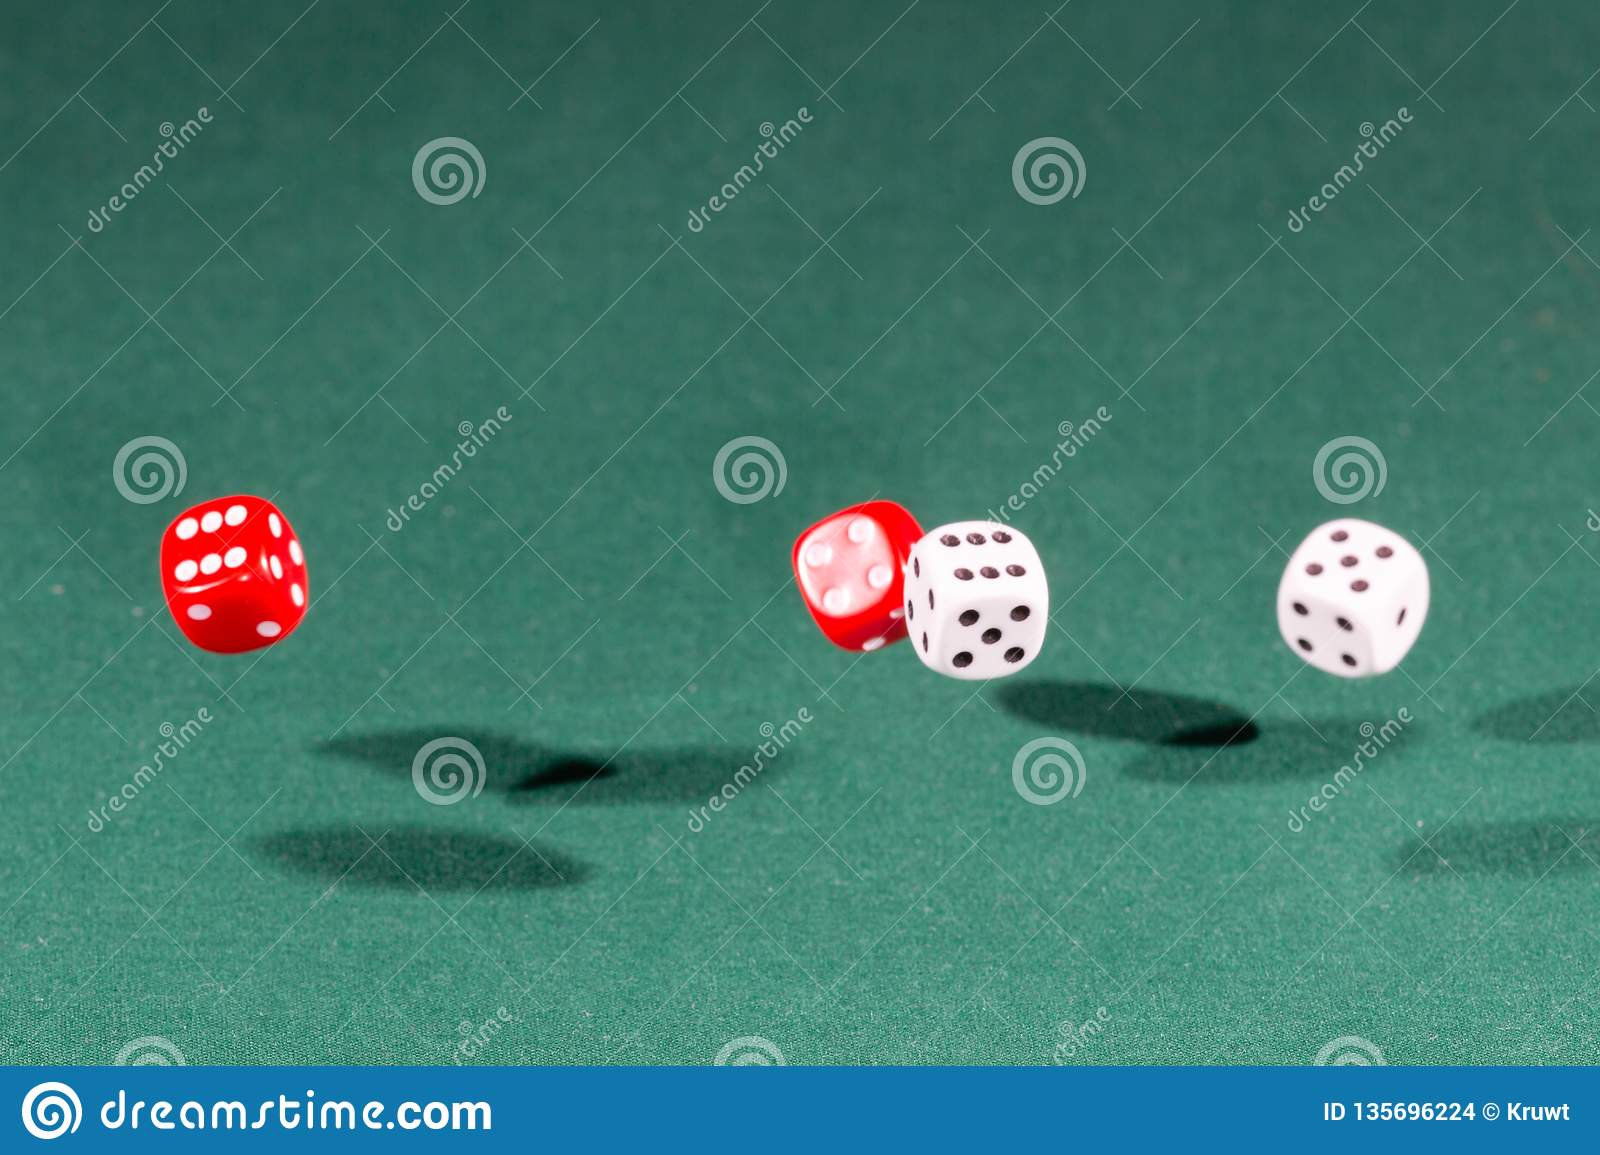 Four red and white dices falling on a green table